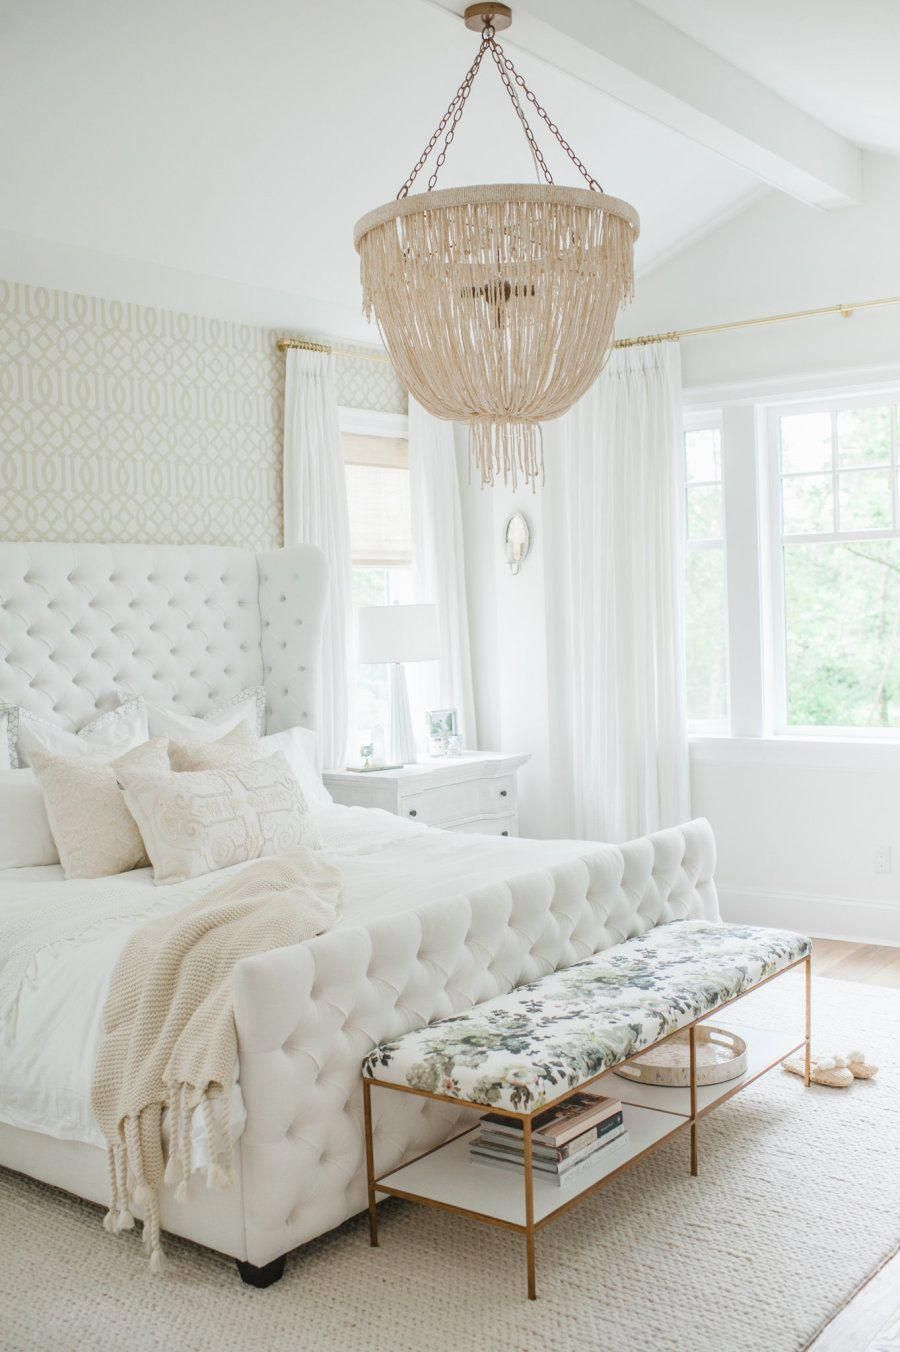 Wedding room decoration ideas 2018  The Dreamiest White Bedroom You Will Ever Meet in   Bedroom